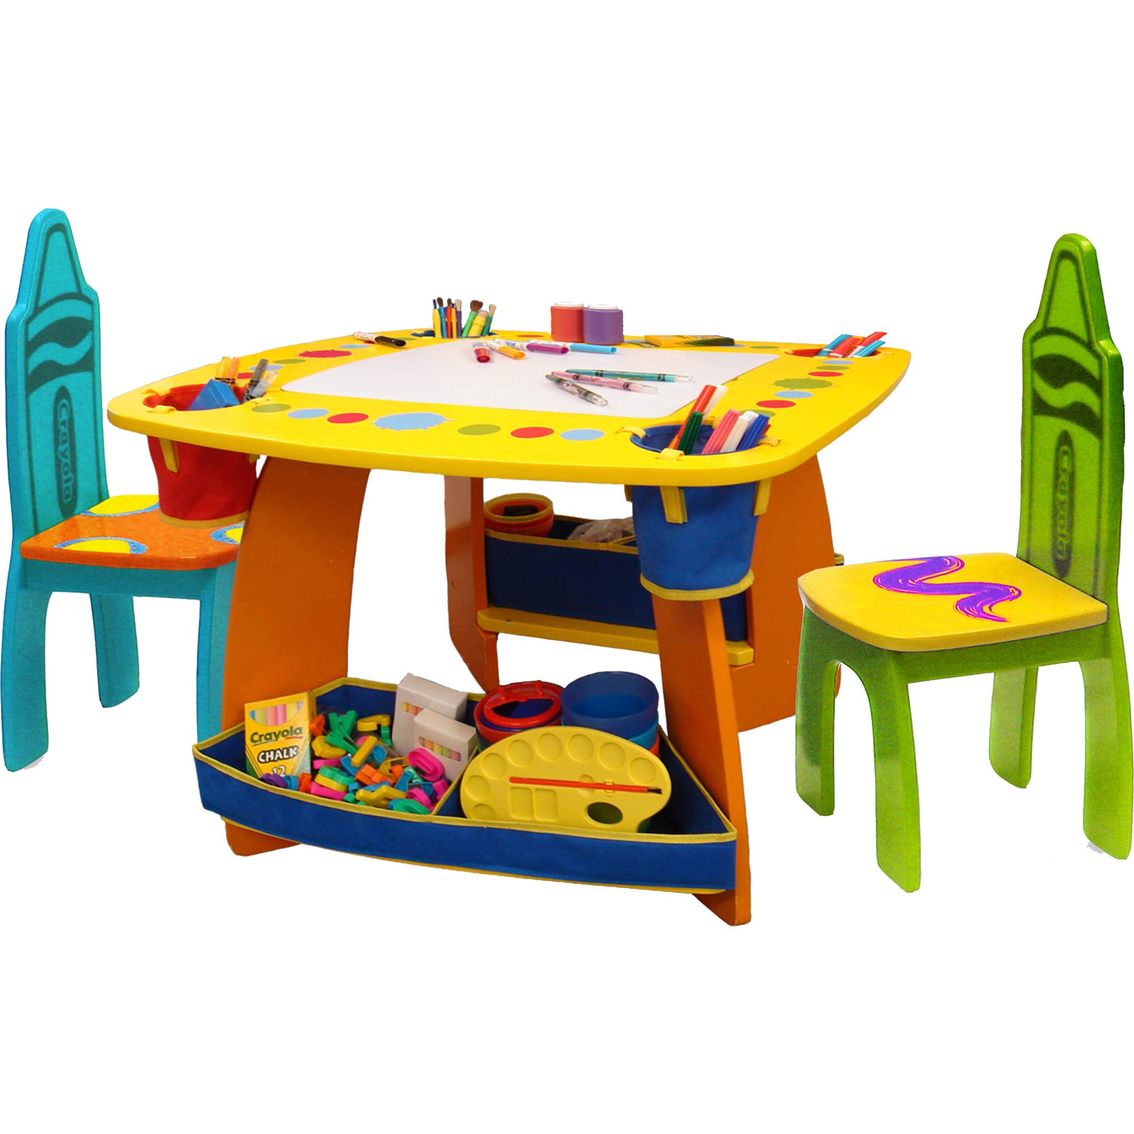 Growu0027n Up Crayola Table and Chair Set  sc 1 st  ShopMyExchange.com & Growu0027n Up Crayola Table And Chair Set | Easels u0026 Tables | Baby ...